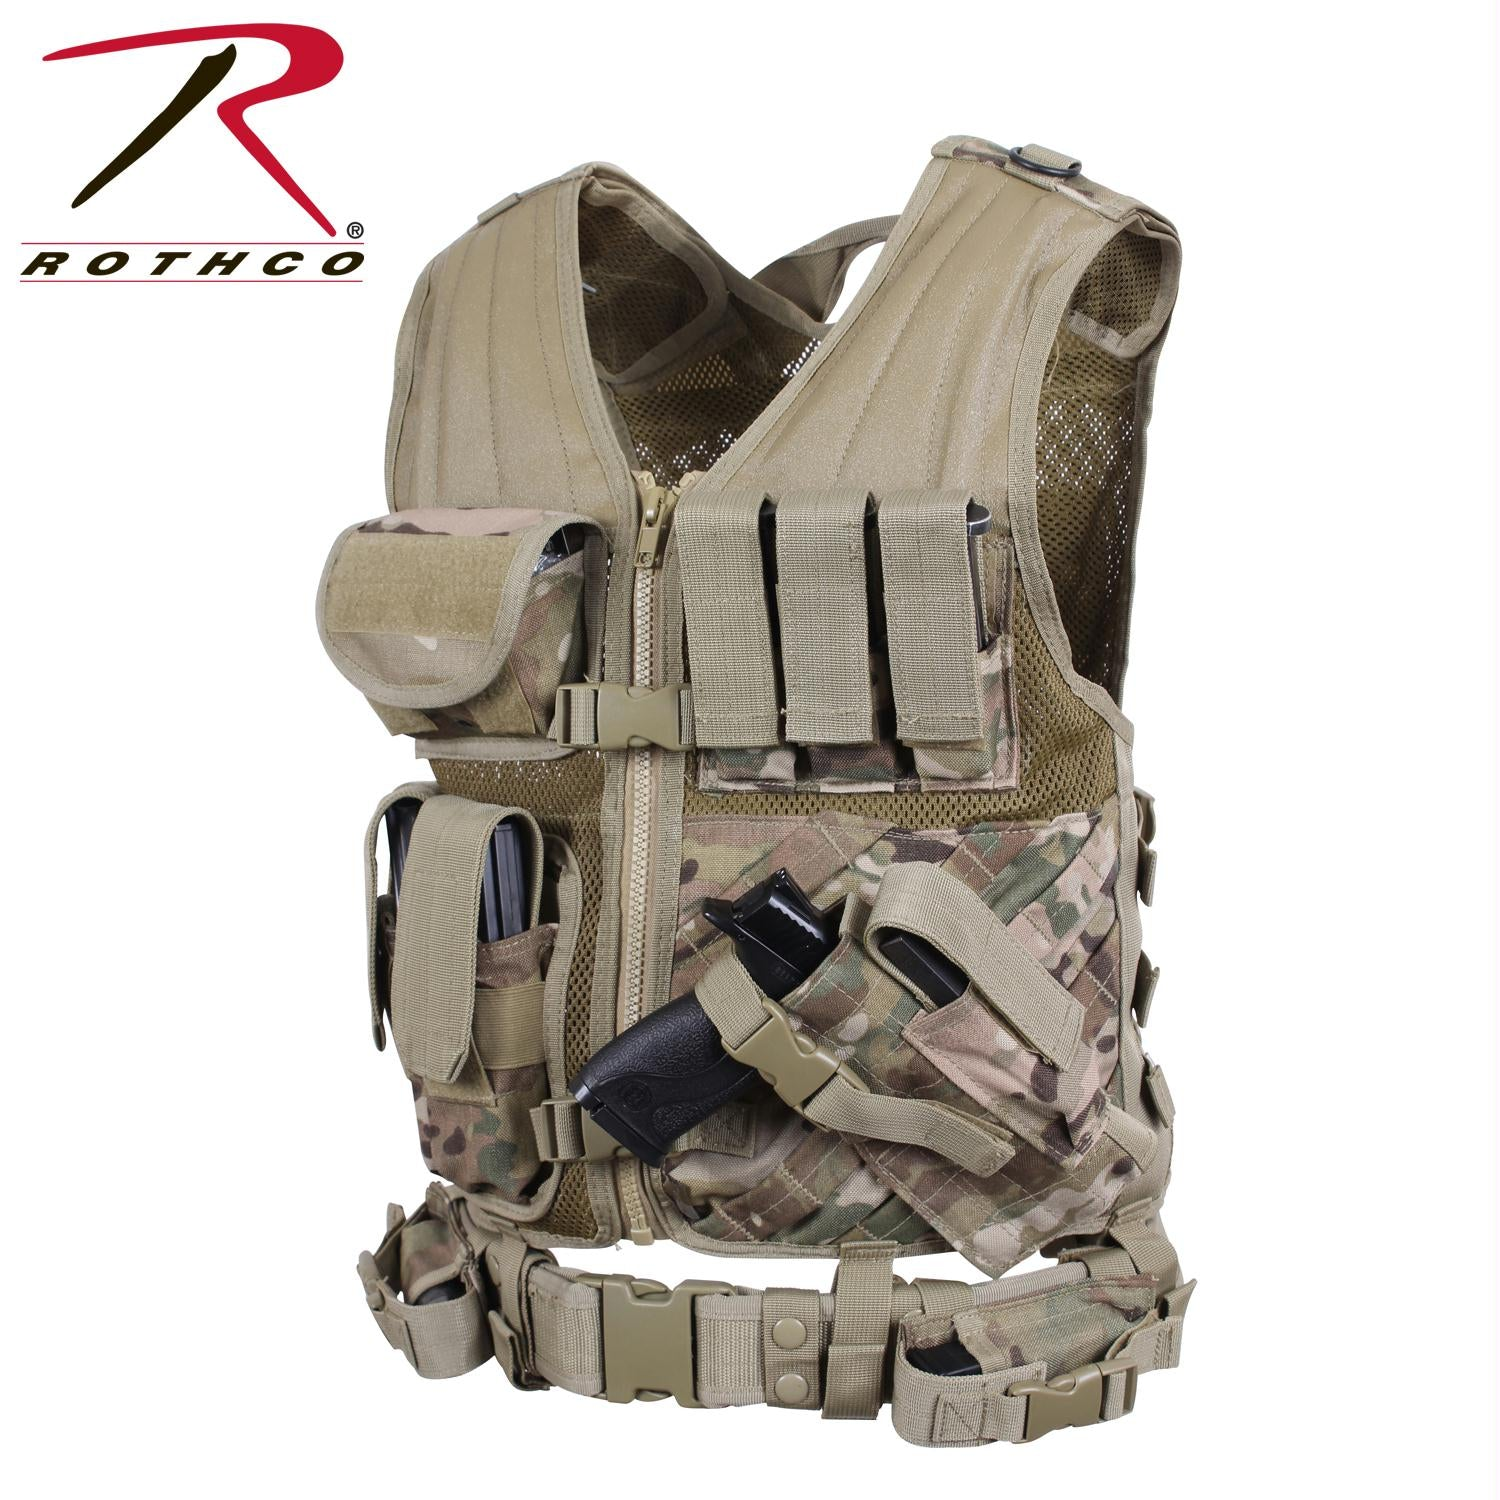 Rothco Cross Draw MOLLE Tactical Vest - MultiCam / Regular